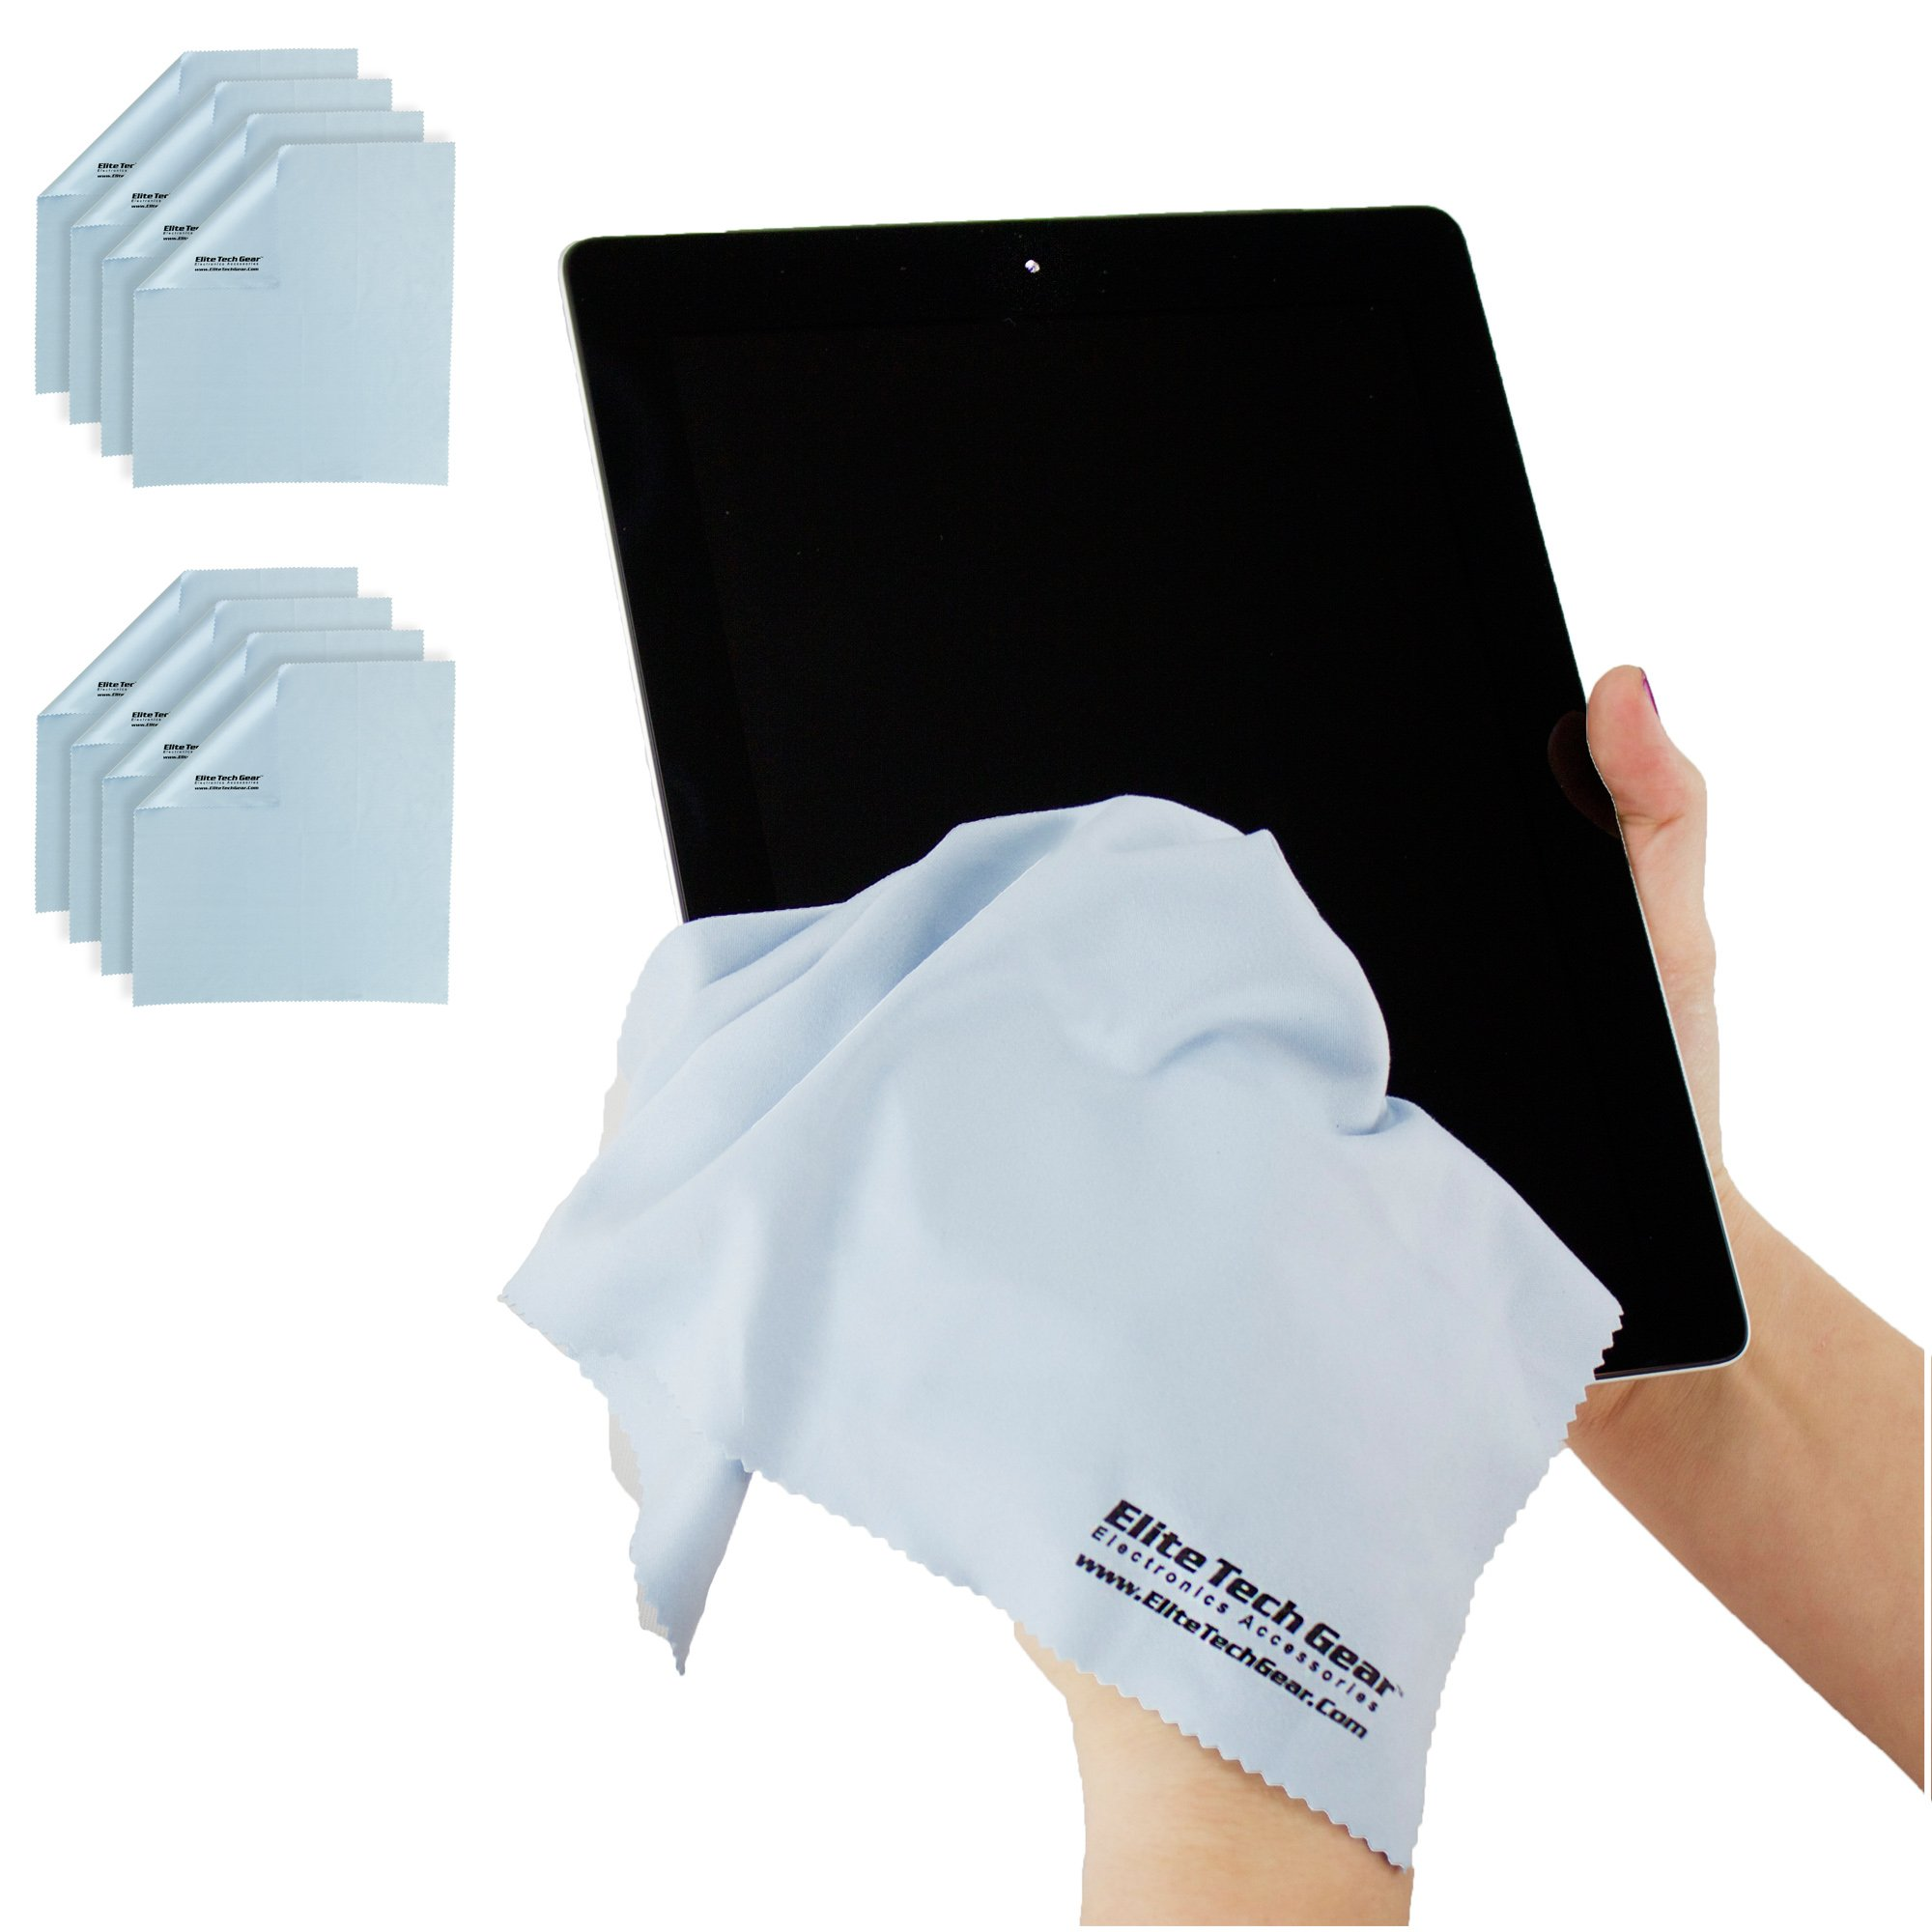 (8-Pack ''OVERSIZED'') The Most Amazing Microfiber Cleaning Cloths - Perfect For Cleaning All Electronic Device Screens, Eyeglasses, Tablets & Delicate Surfaces (8 Oversized 12''x12'') by Elite Tech Gear